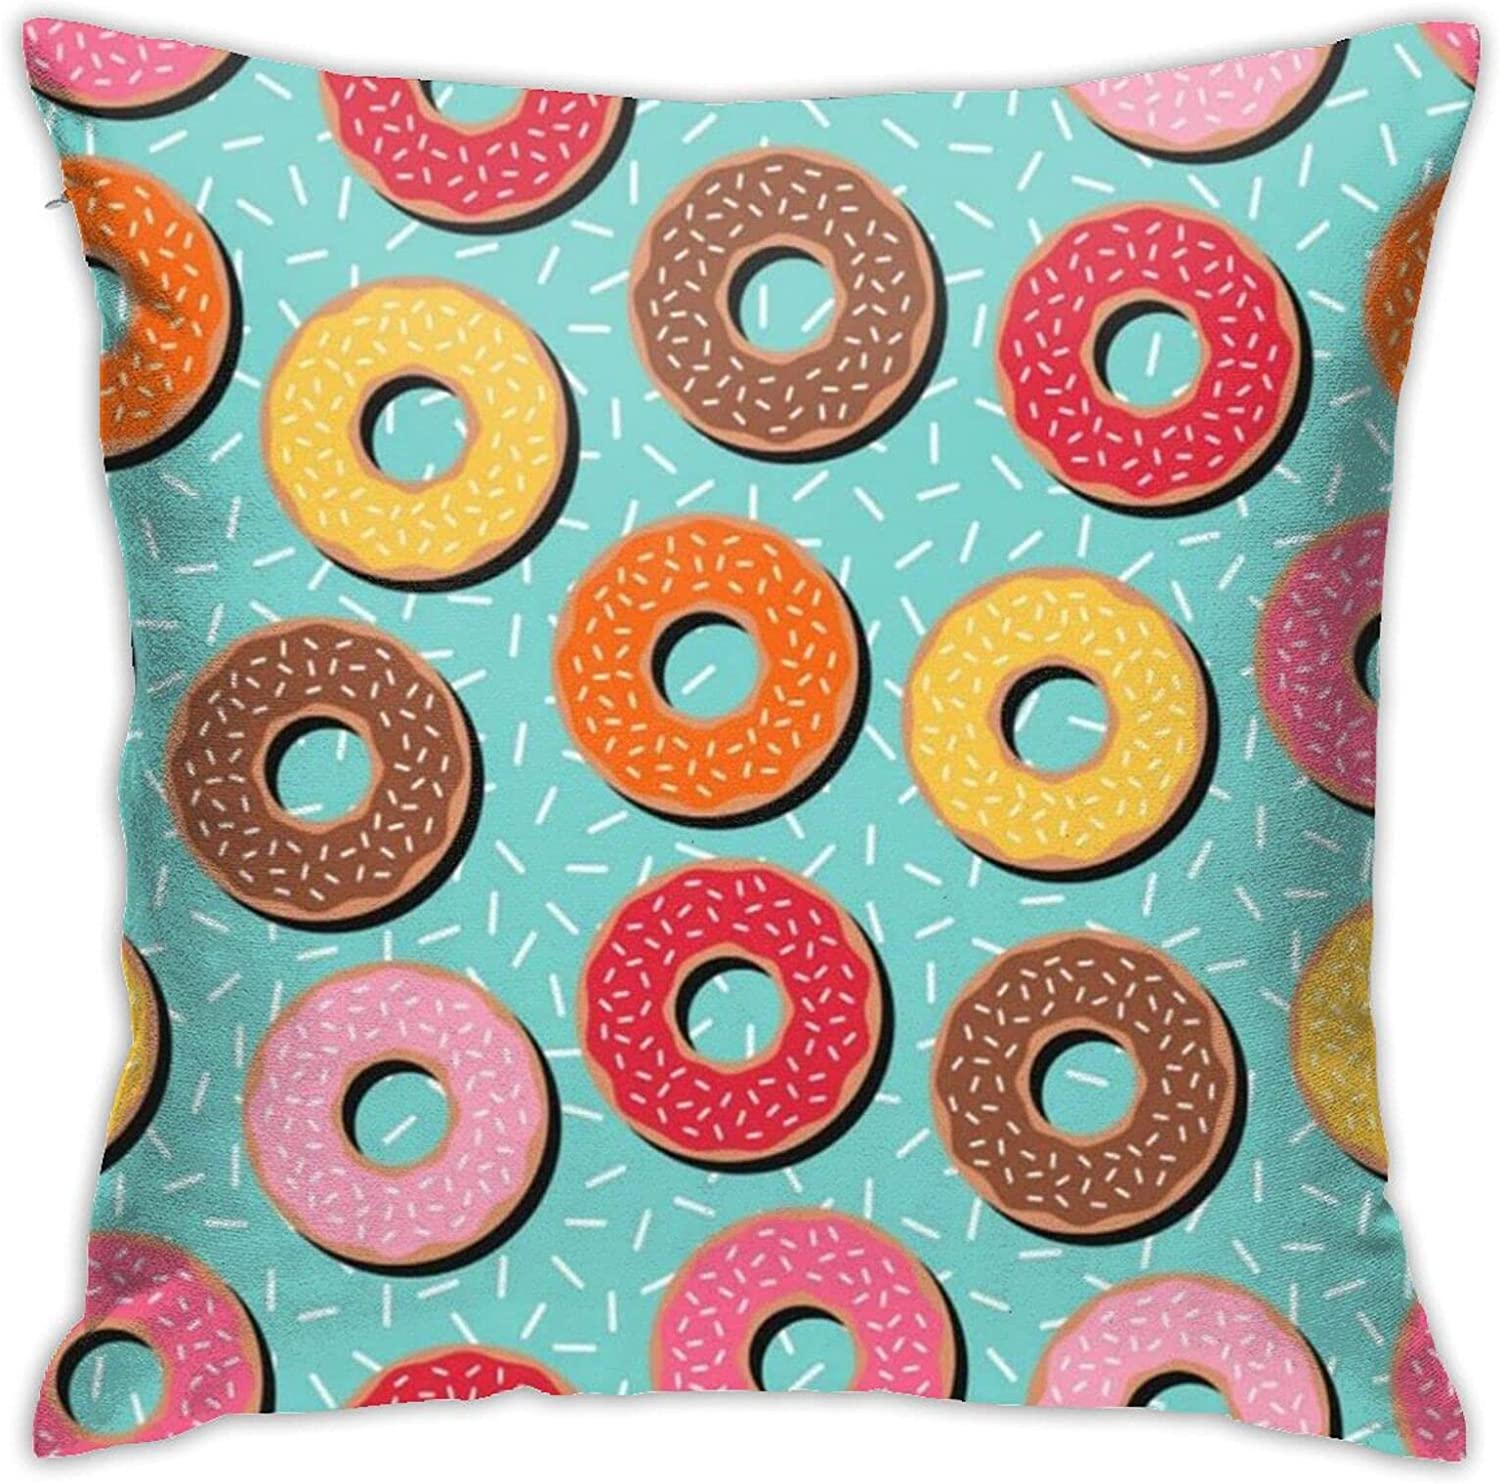 Colorful Donuts 18 X Inches Limited Special Price Cute Design Pillows Bed and New product type Couch